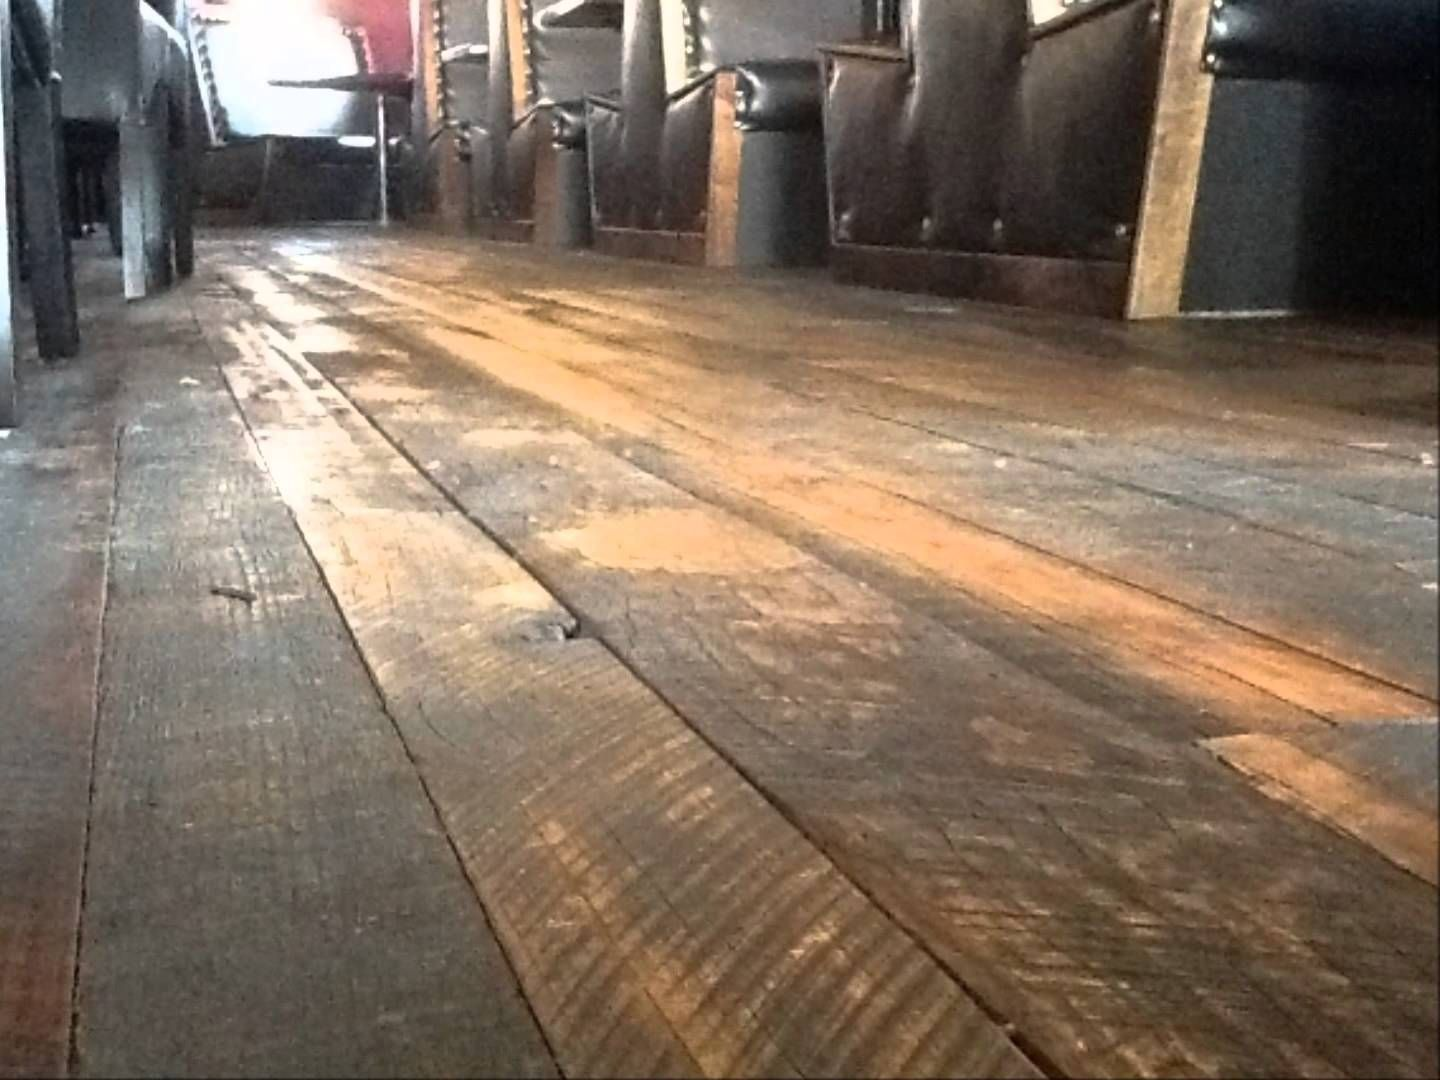 How To Lay Pallet Flooring Awesome pallet wood floor - How To Lay Pallet Flooring Awesome Pallet Wood Floor Dream Home